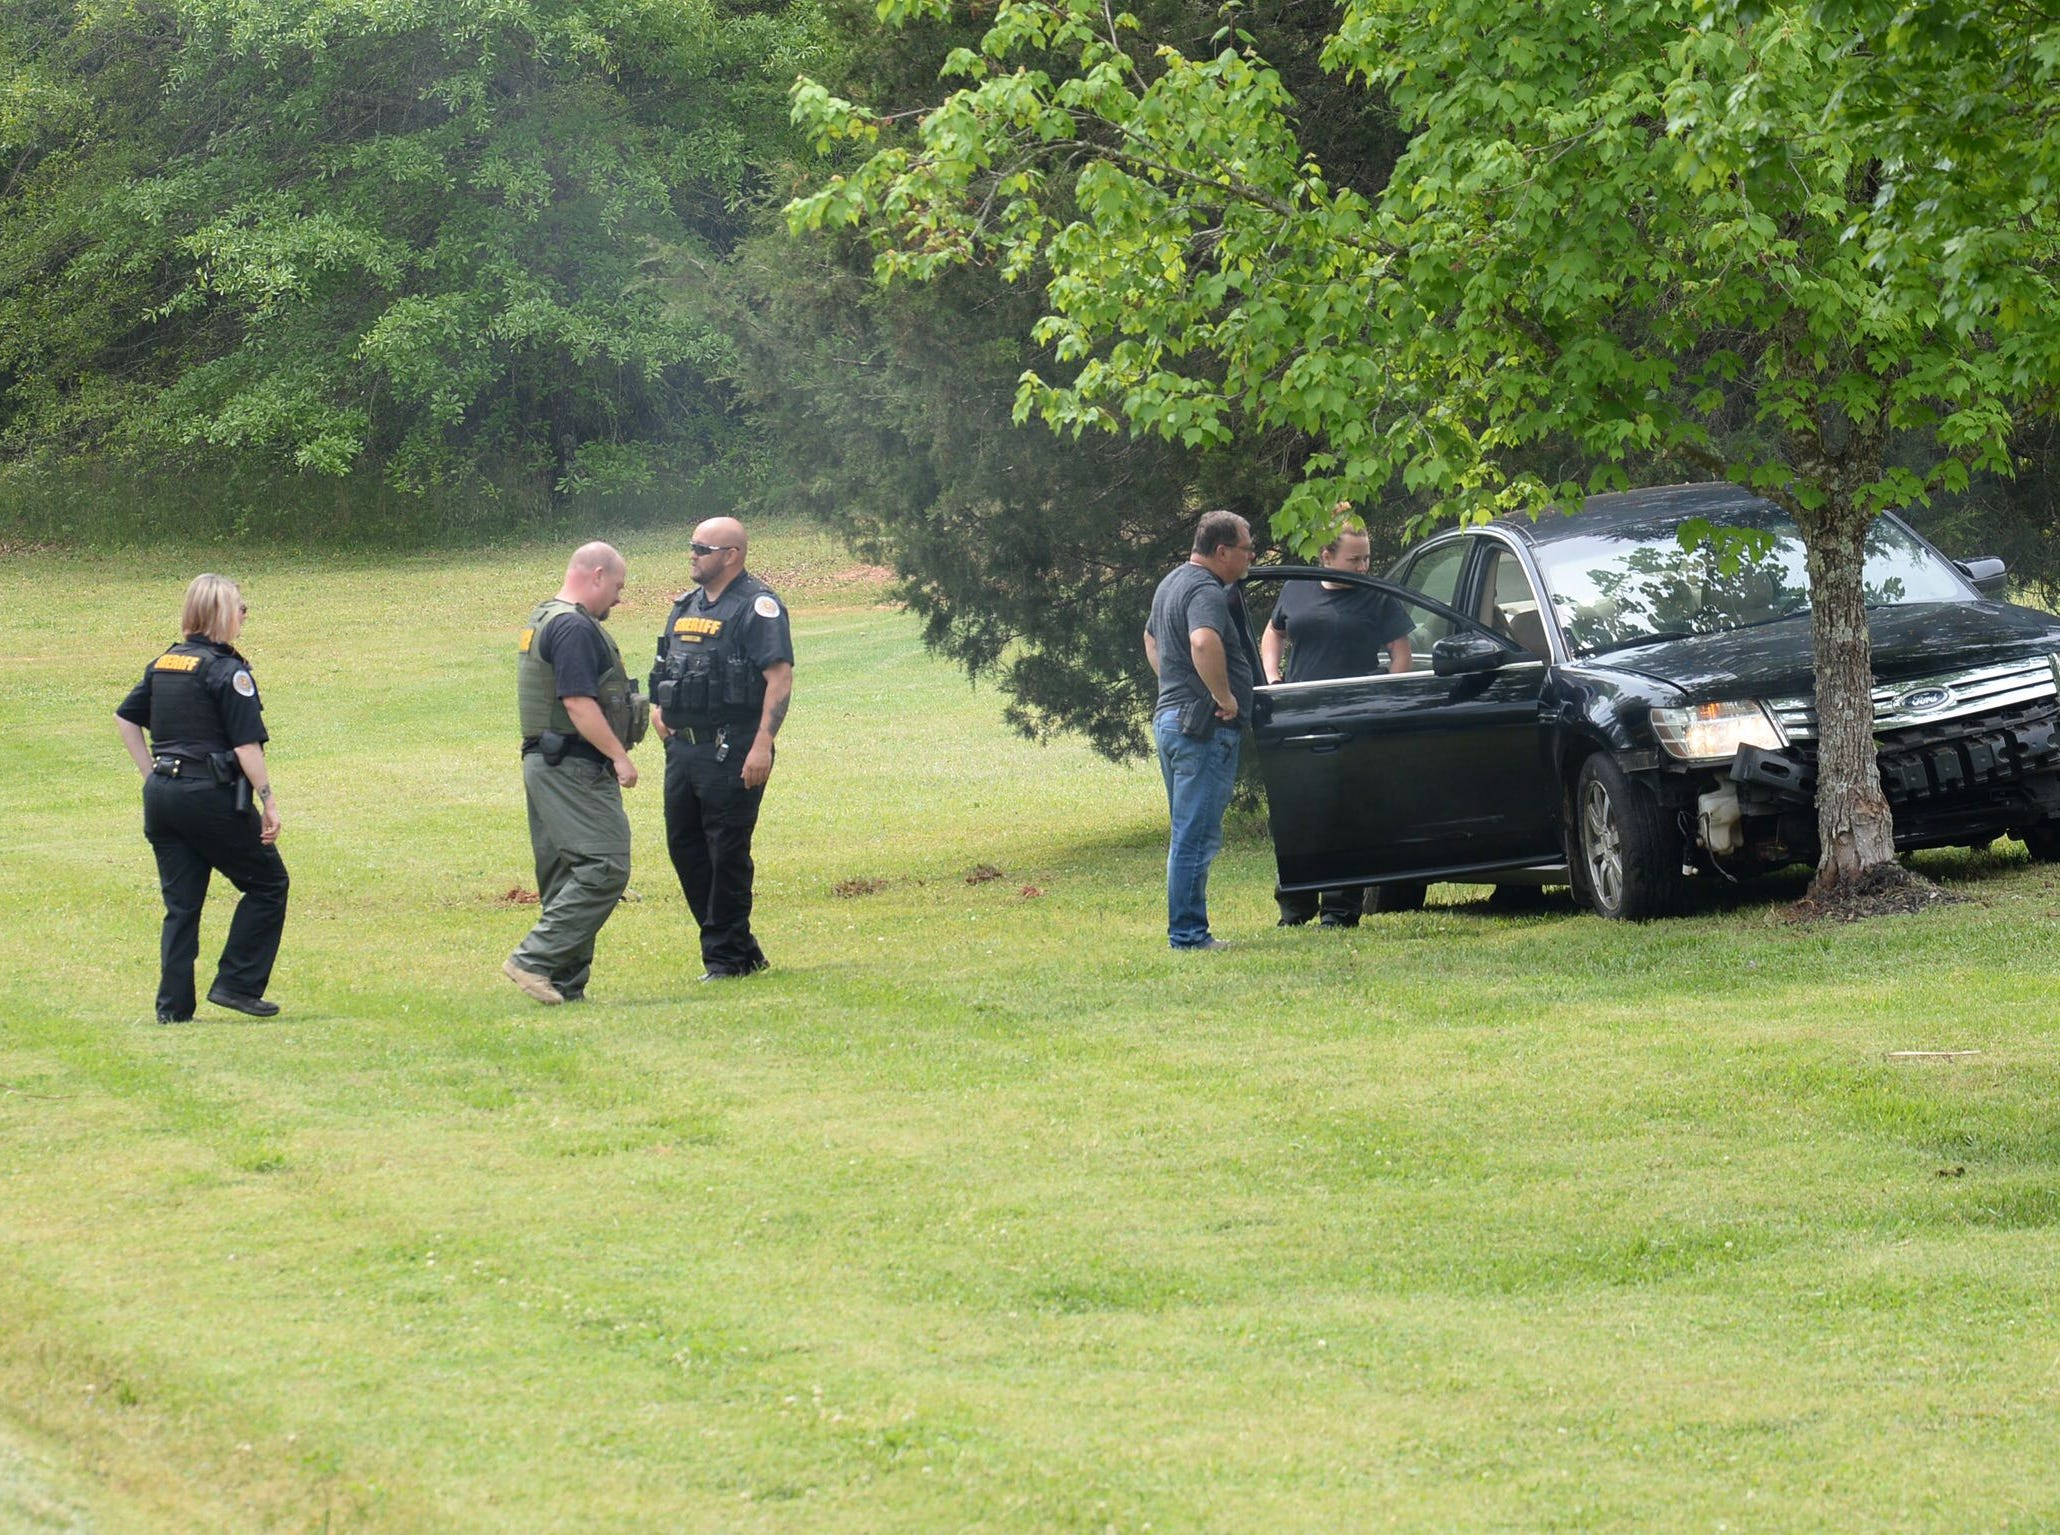 Anderson County Sheriff's Office deputies were involved in a foot chase of a suspect following a car chase Thursday, April 25, 2019, that ended at Wright School Road and SC 252 in Belton, where the suspect fled.